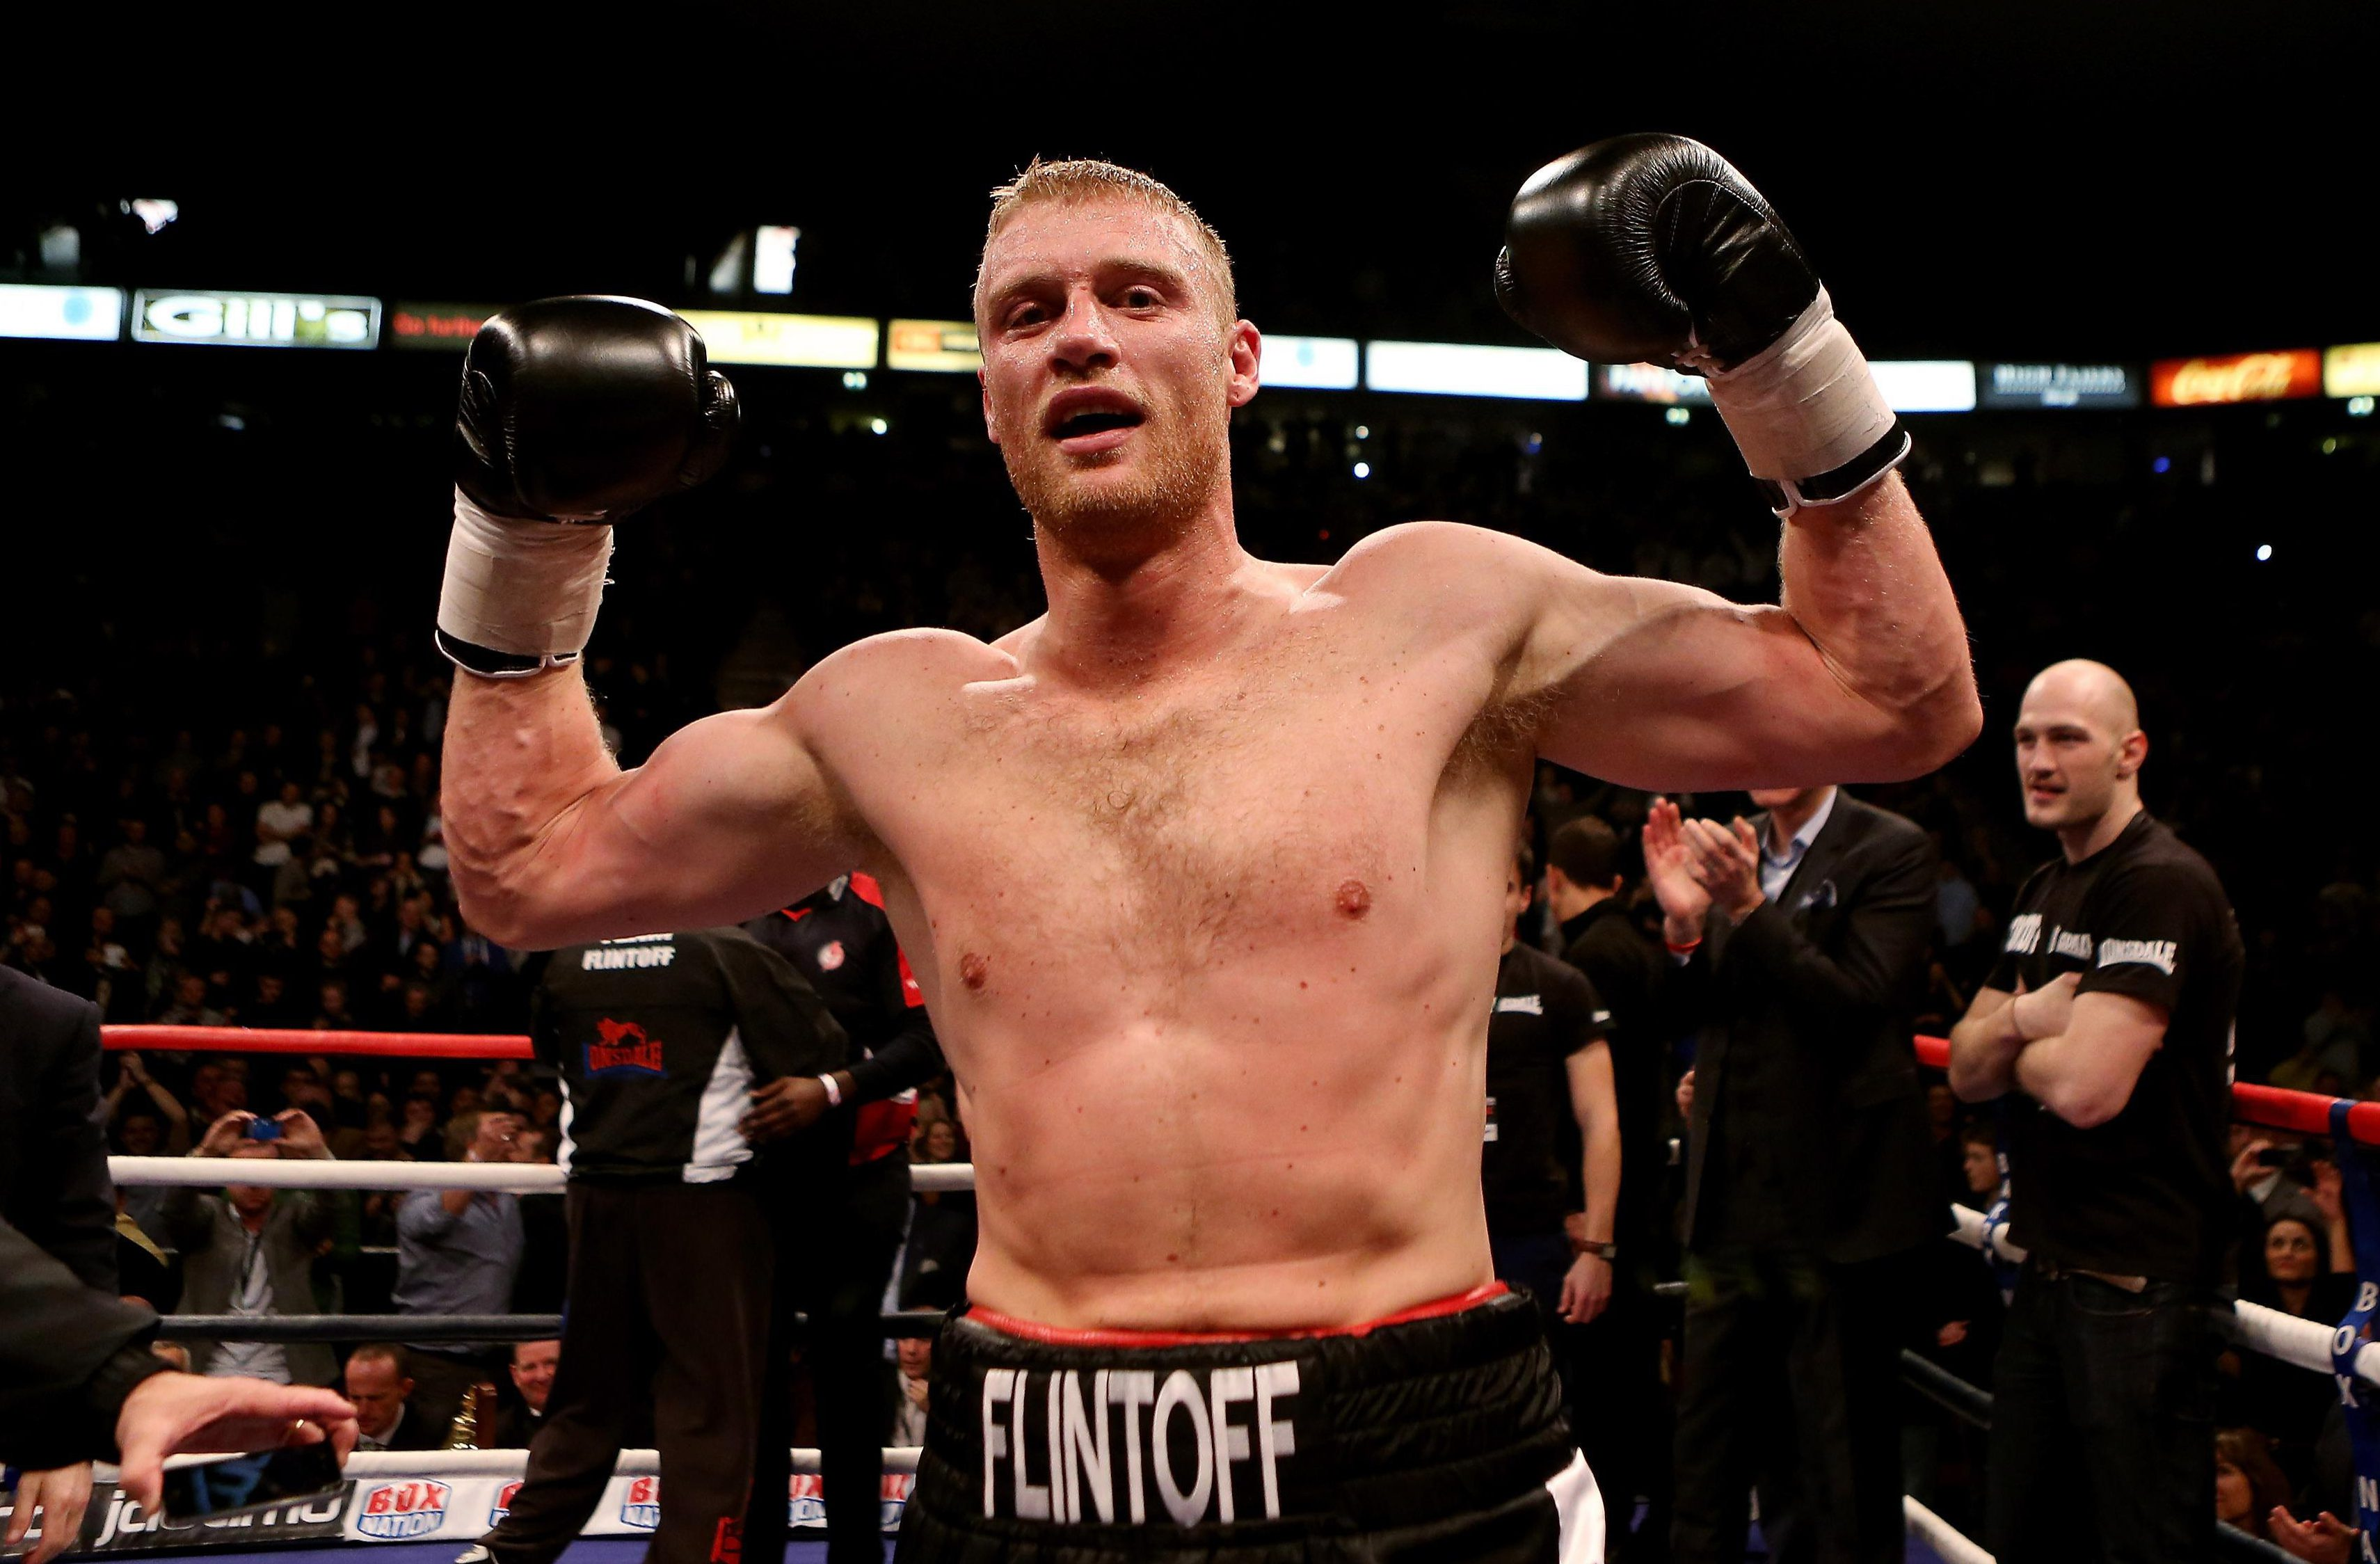 Andrew Flintoff made his name as a cricketer but later tried his luck in the boxing ring